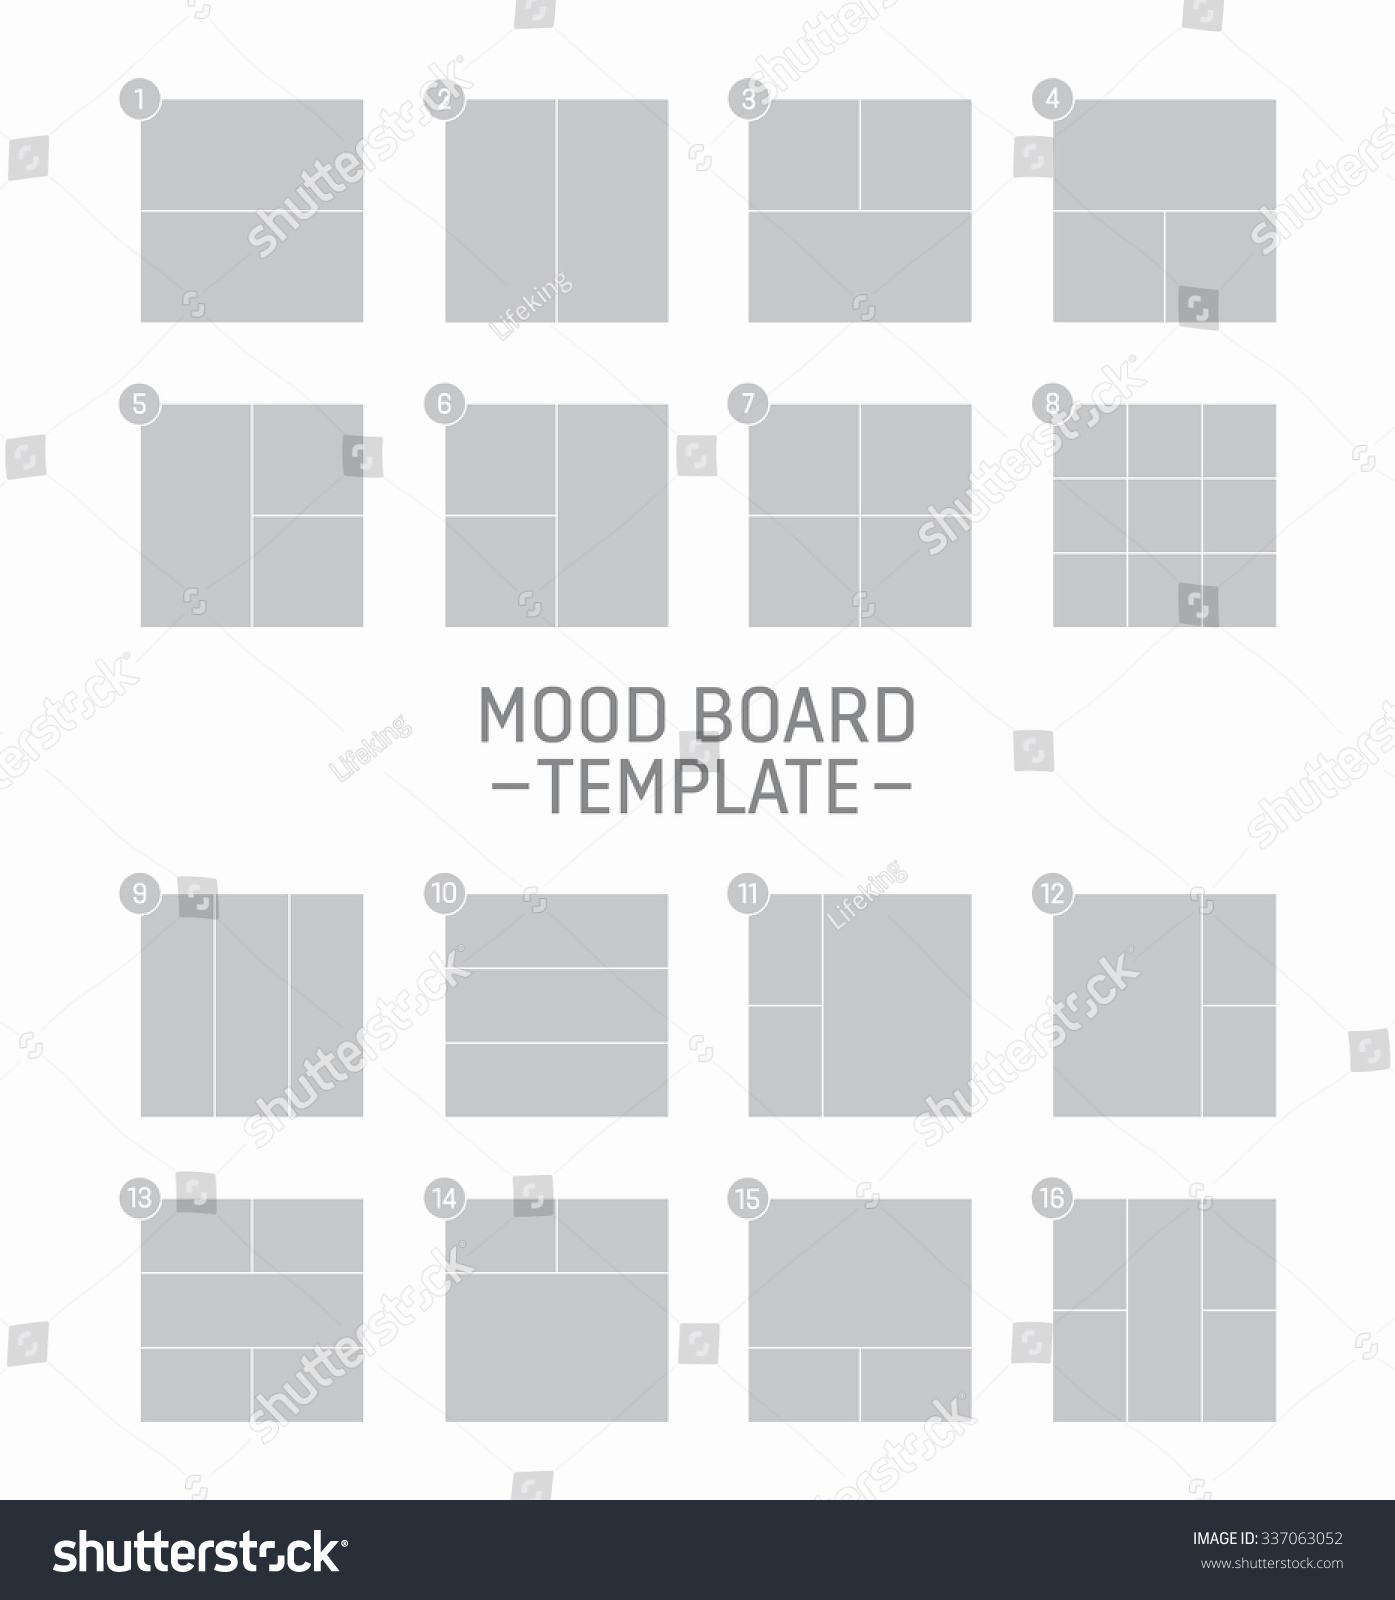 fashion mood board template - vector mood board template stock vector 337063052